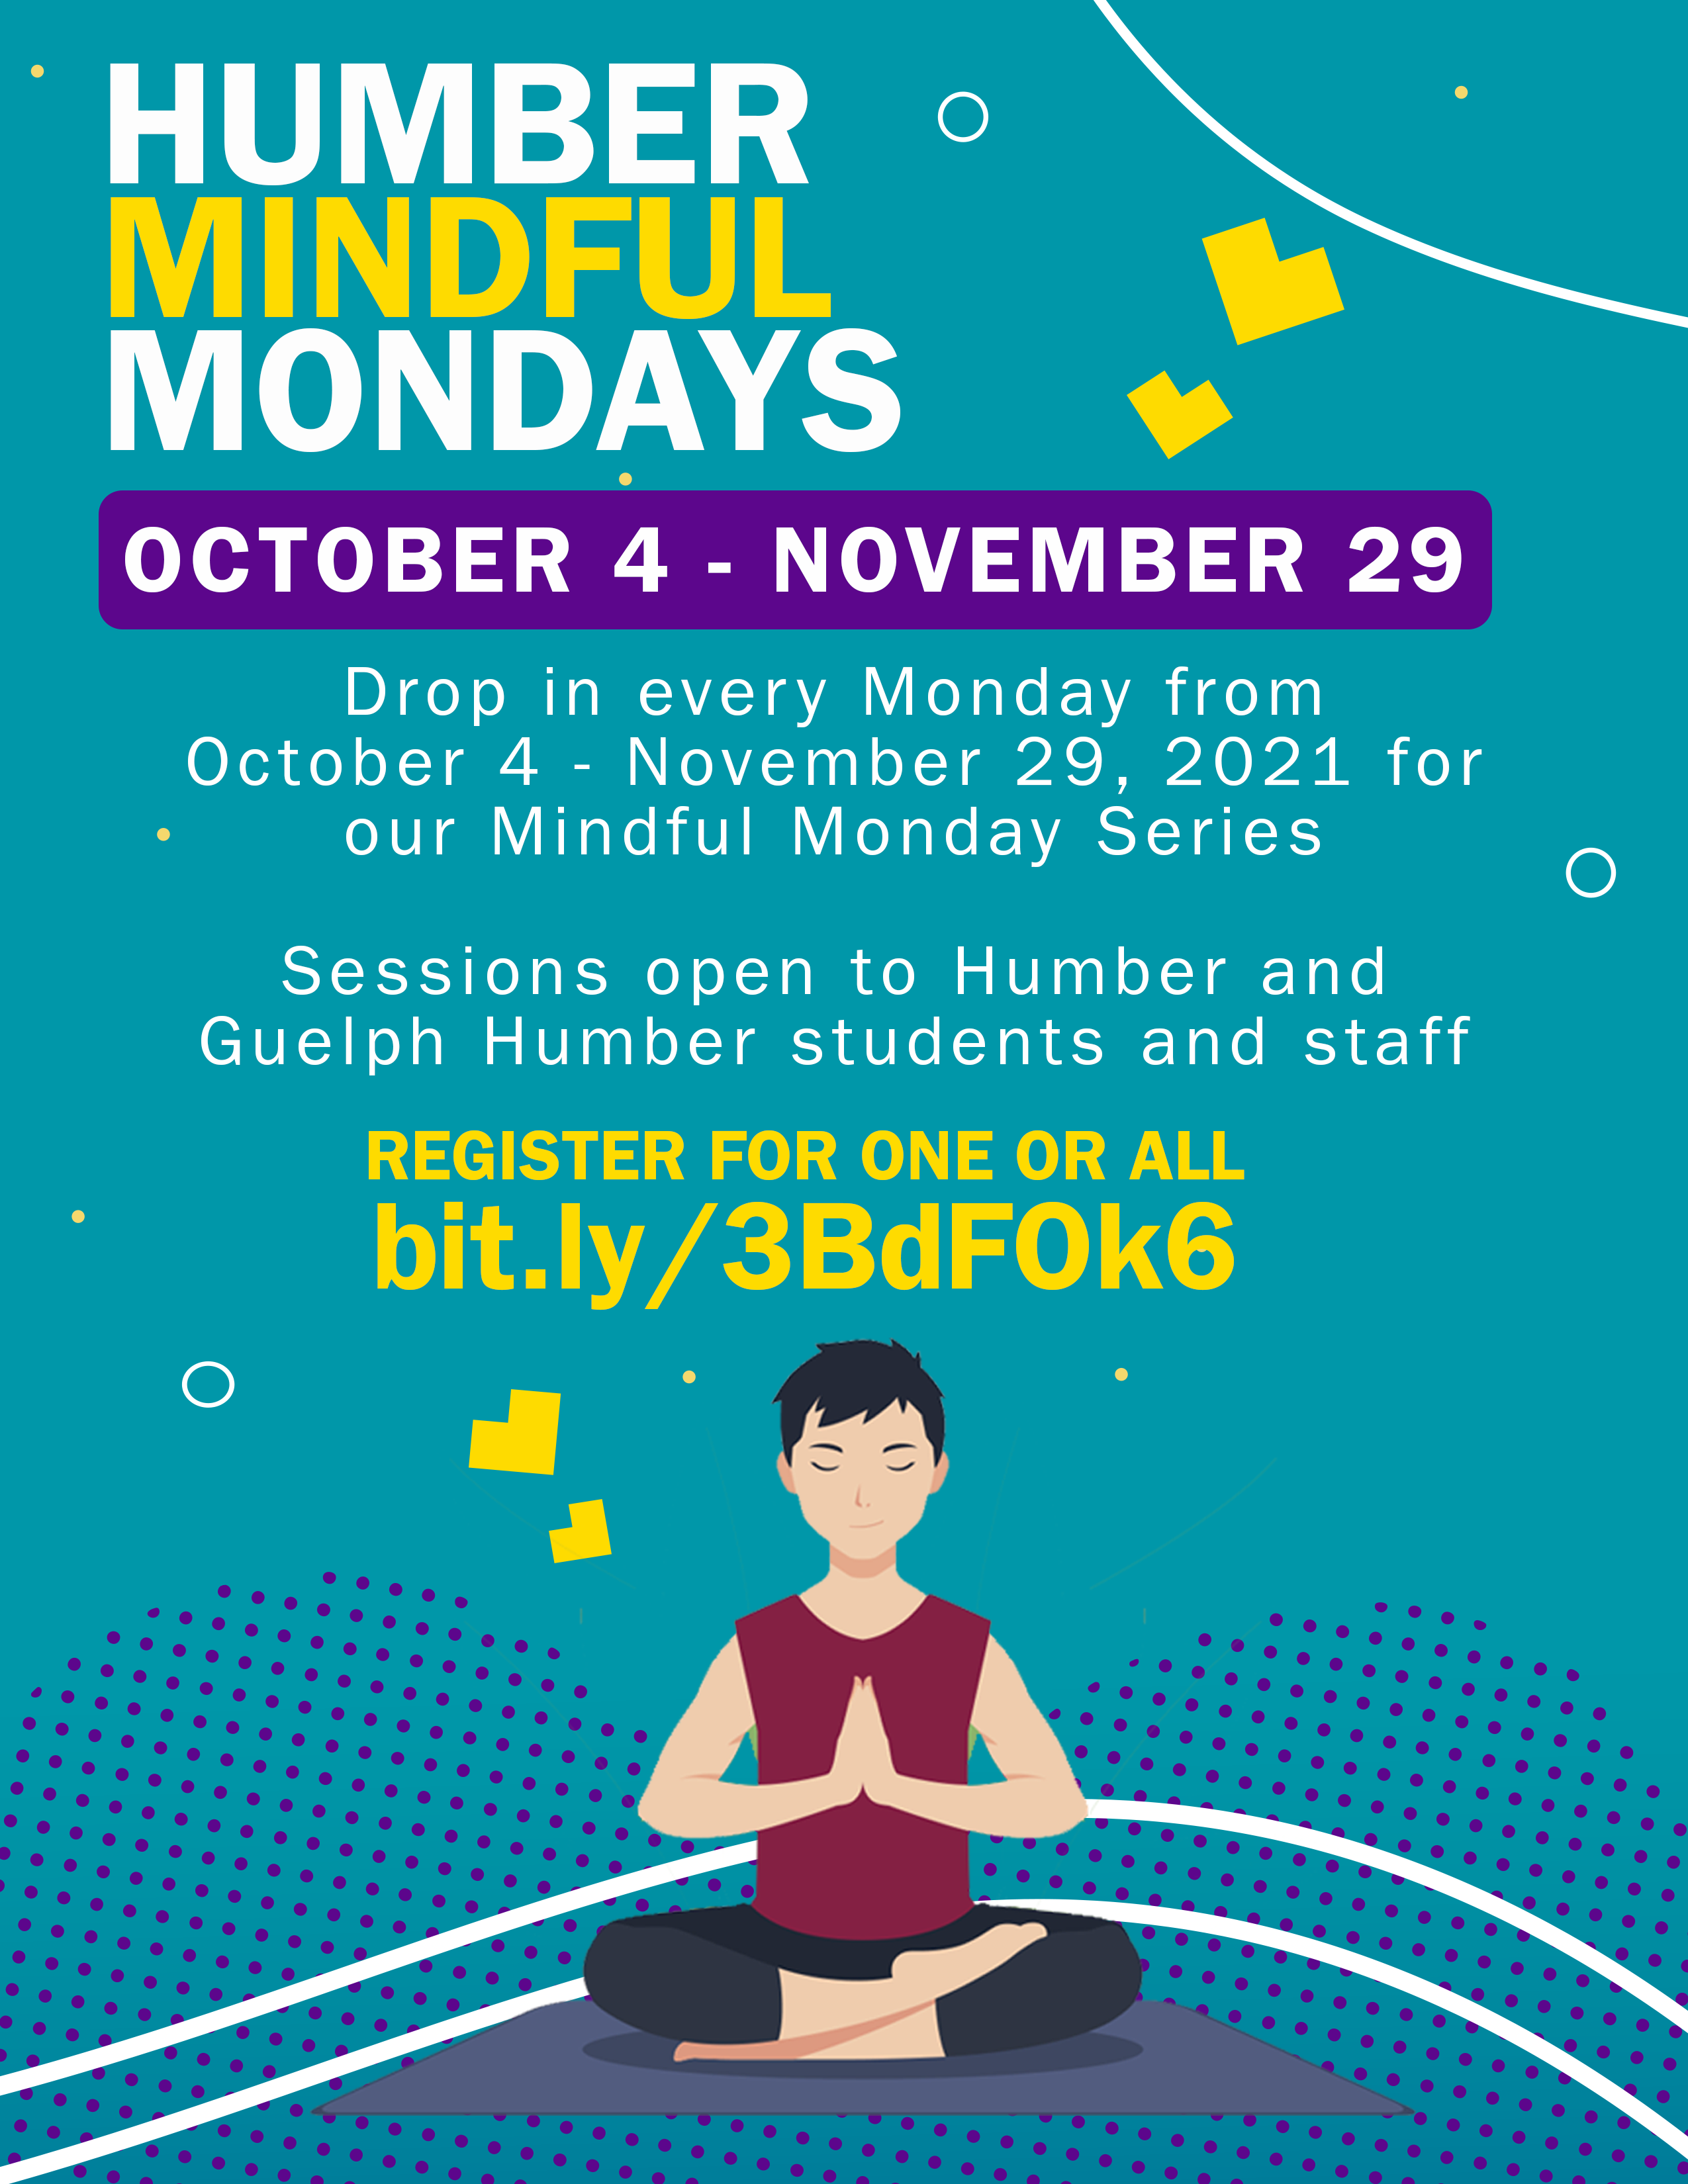 Details with graphics of all Humber Mindful Monday sessions from February 1 - March 29, 2021